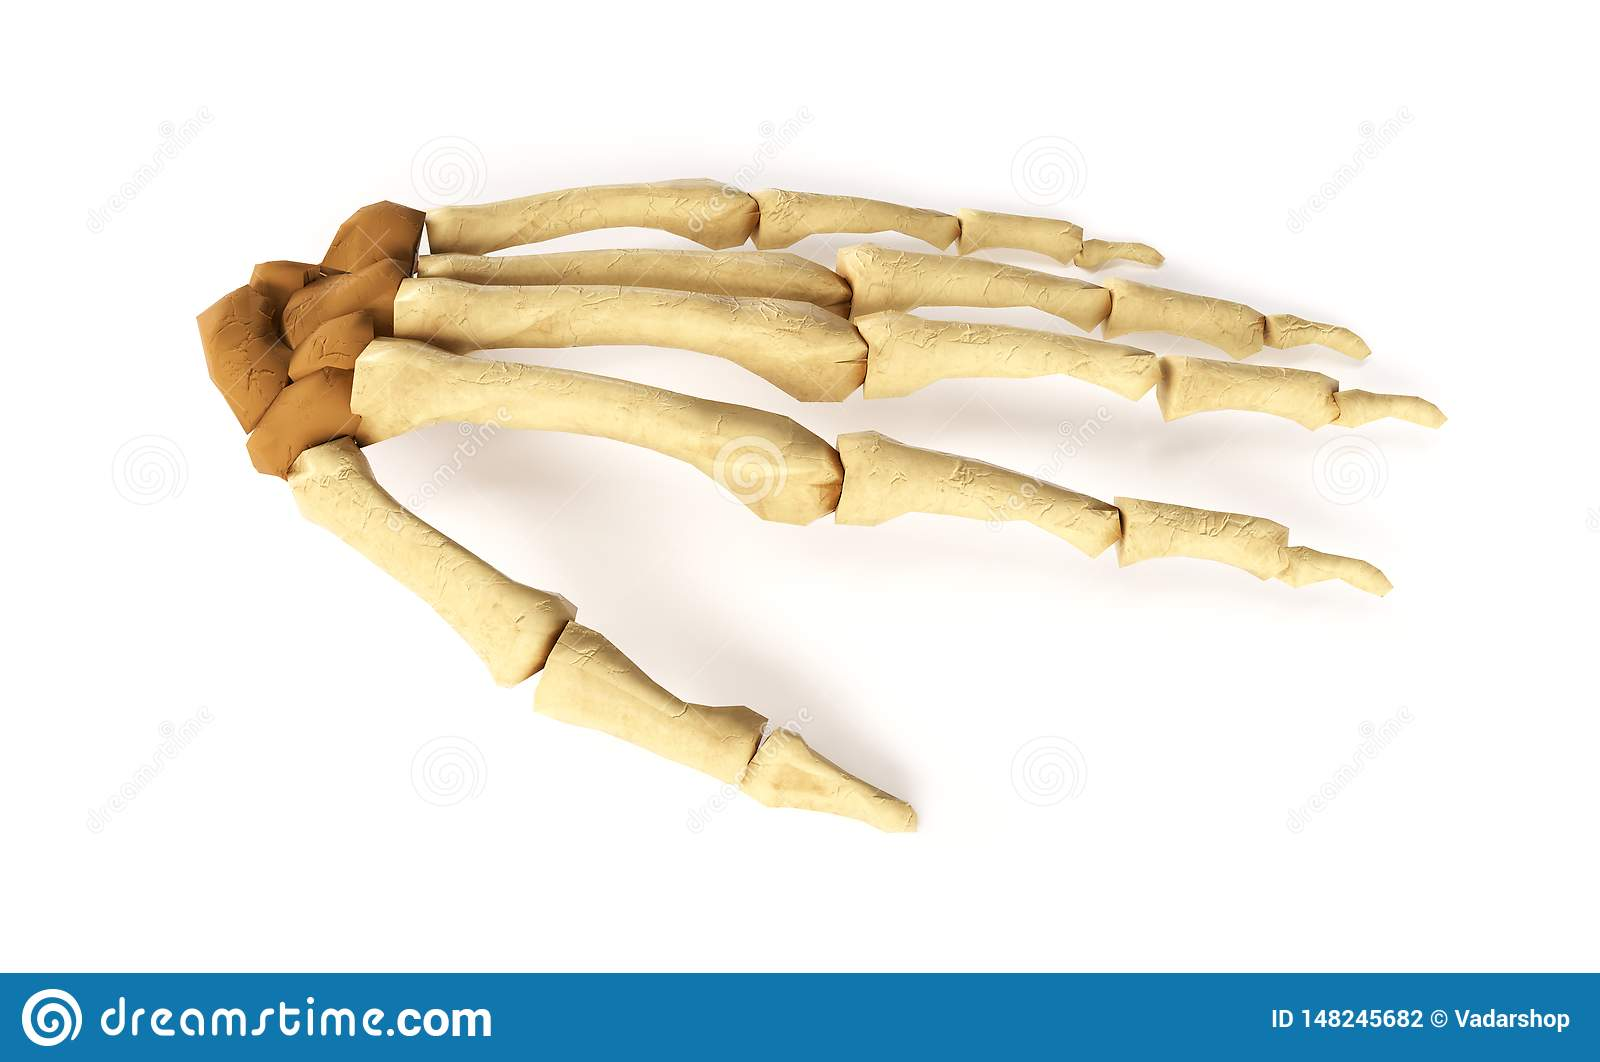 Medical accurate 3d illustration of the hand bones